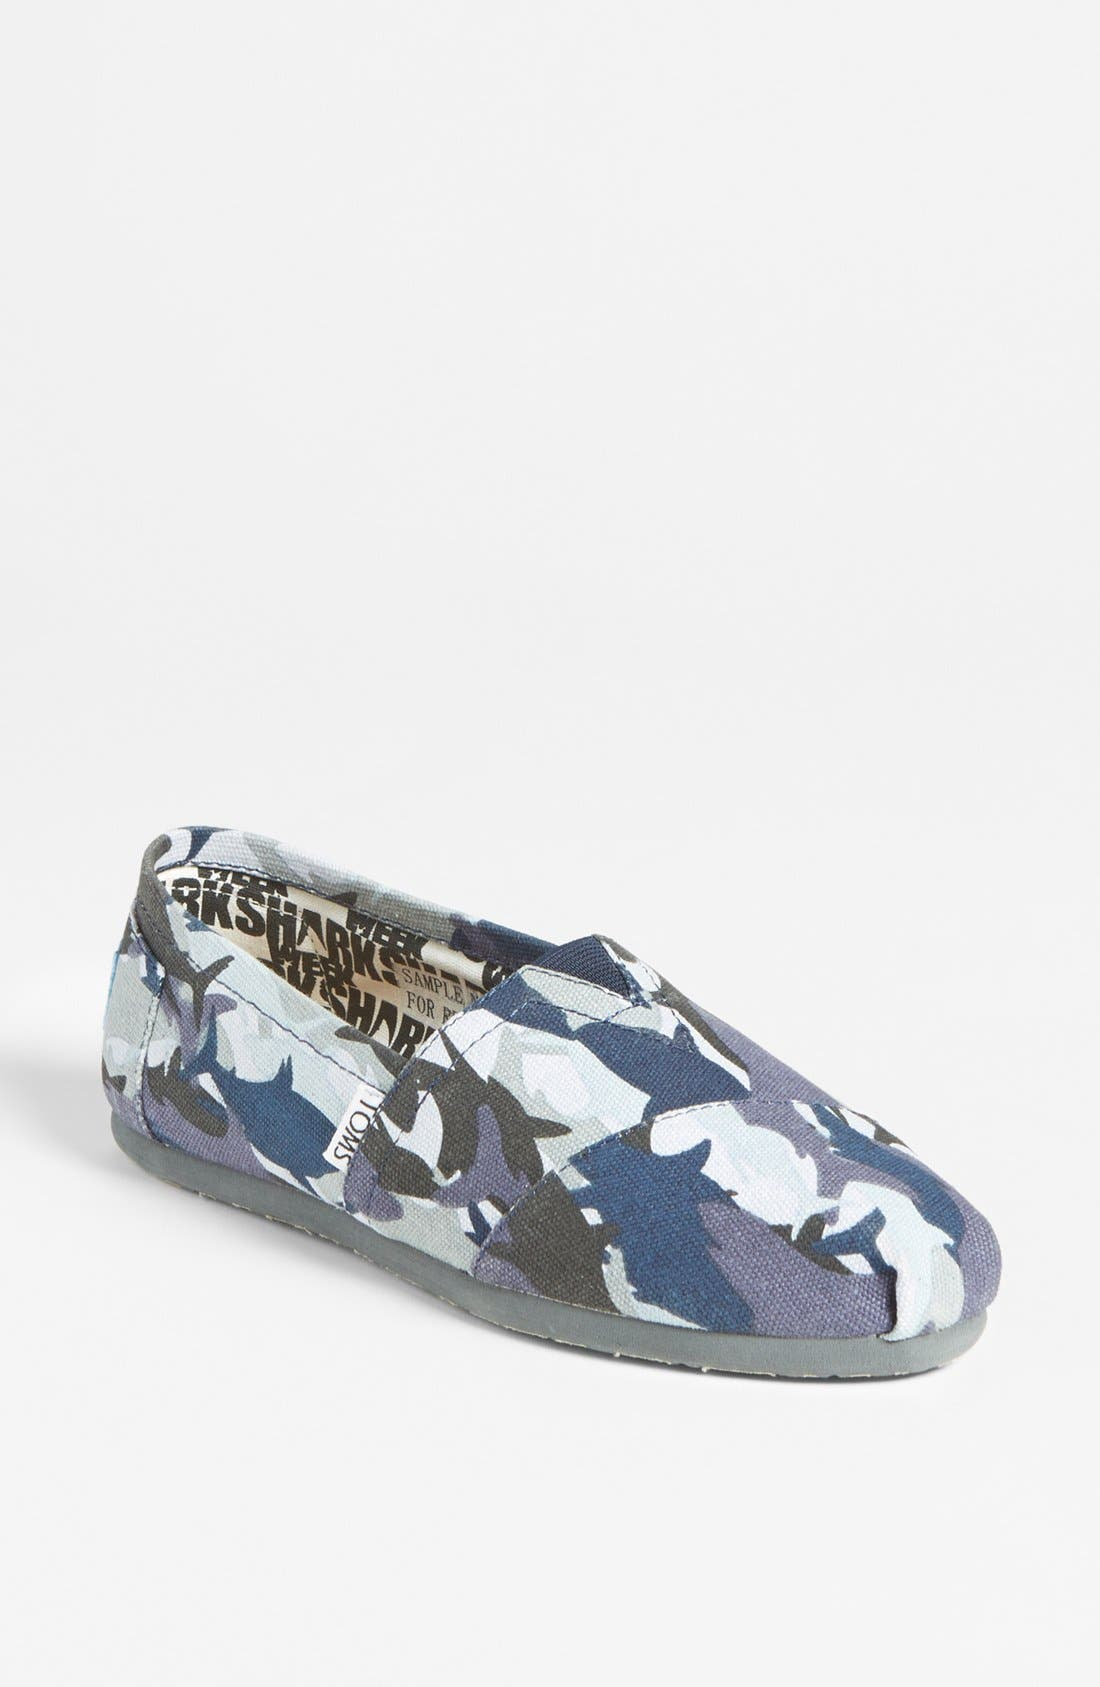 Alternate Image 1 Selected - TOMS 'Classic - Shark Week' Slip-On (Women) (Limited Edition)